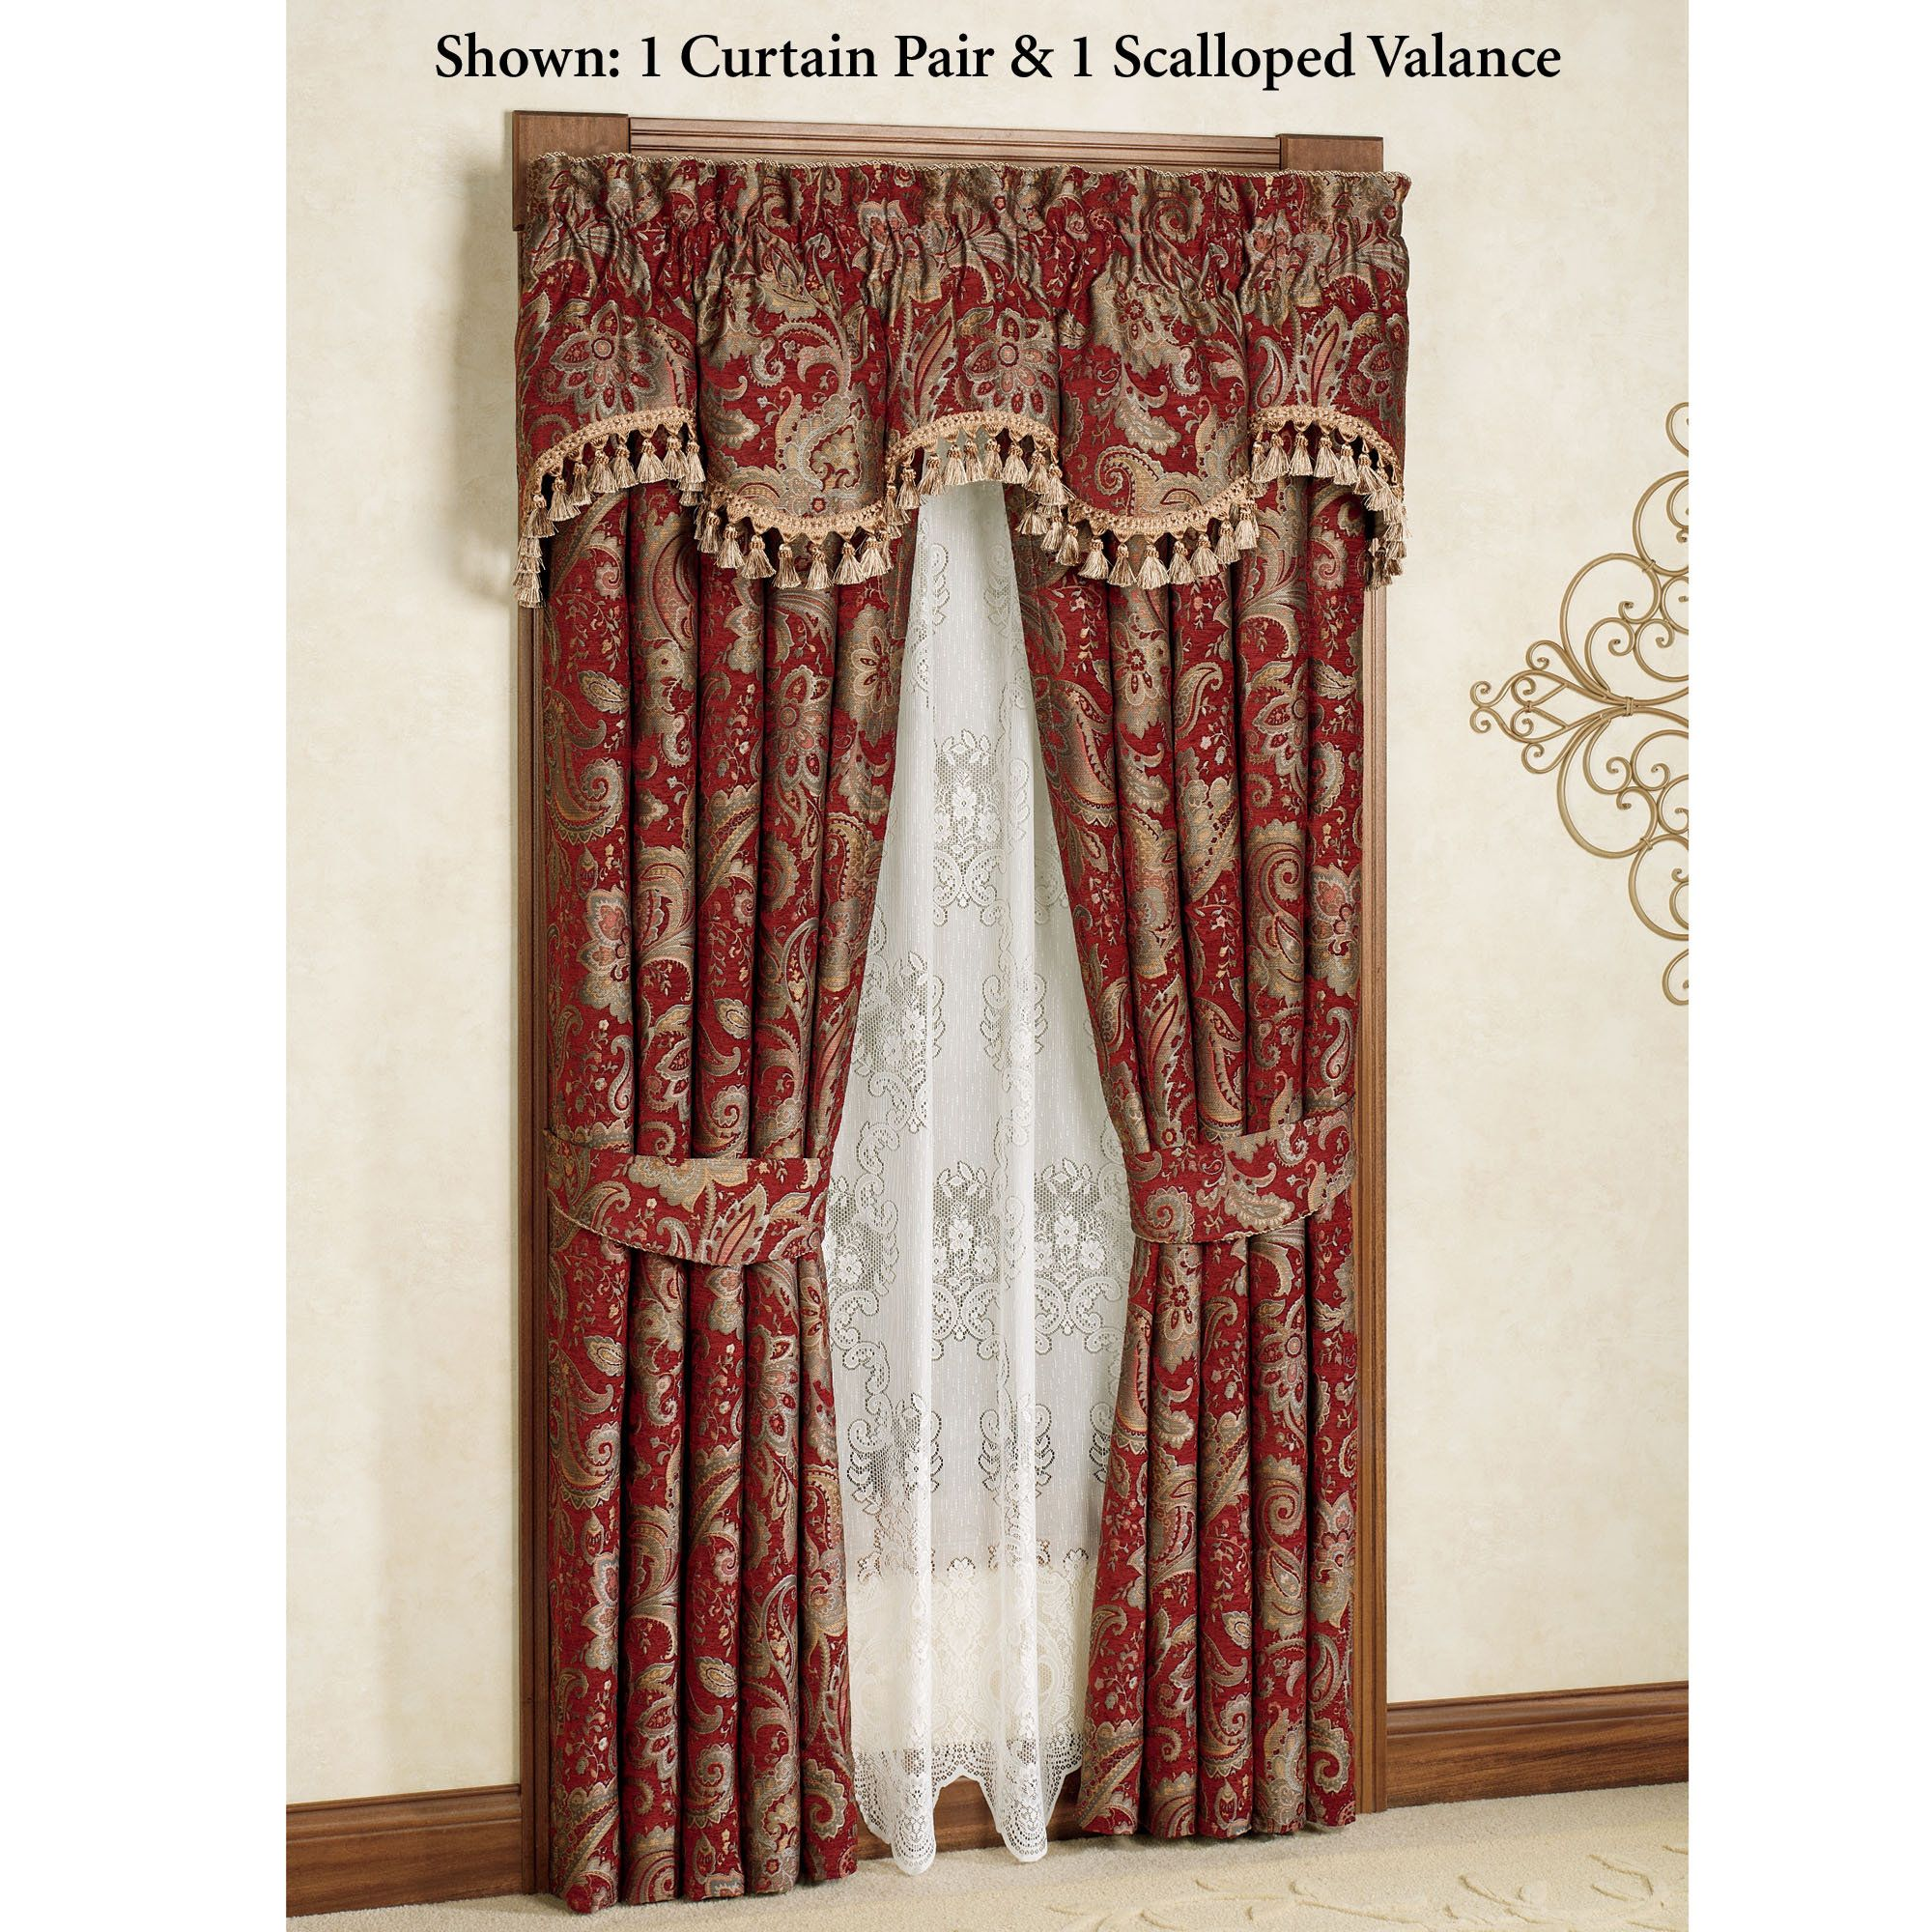 curtain inside com great fabric paisley pictures x curtains pnintelligentdialogue black attractive measurements shower